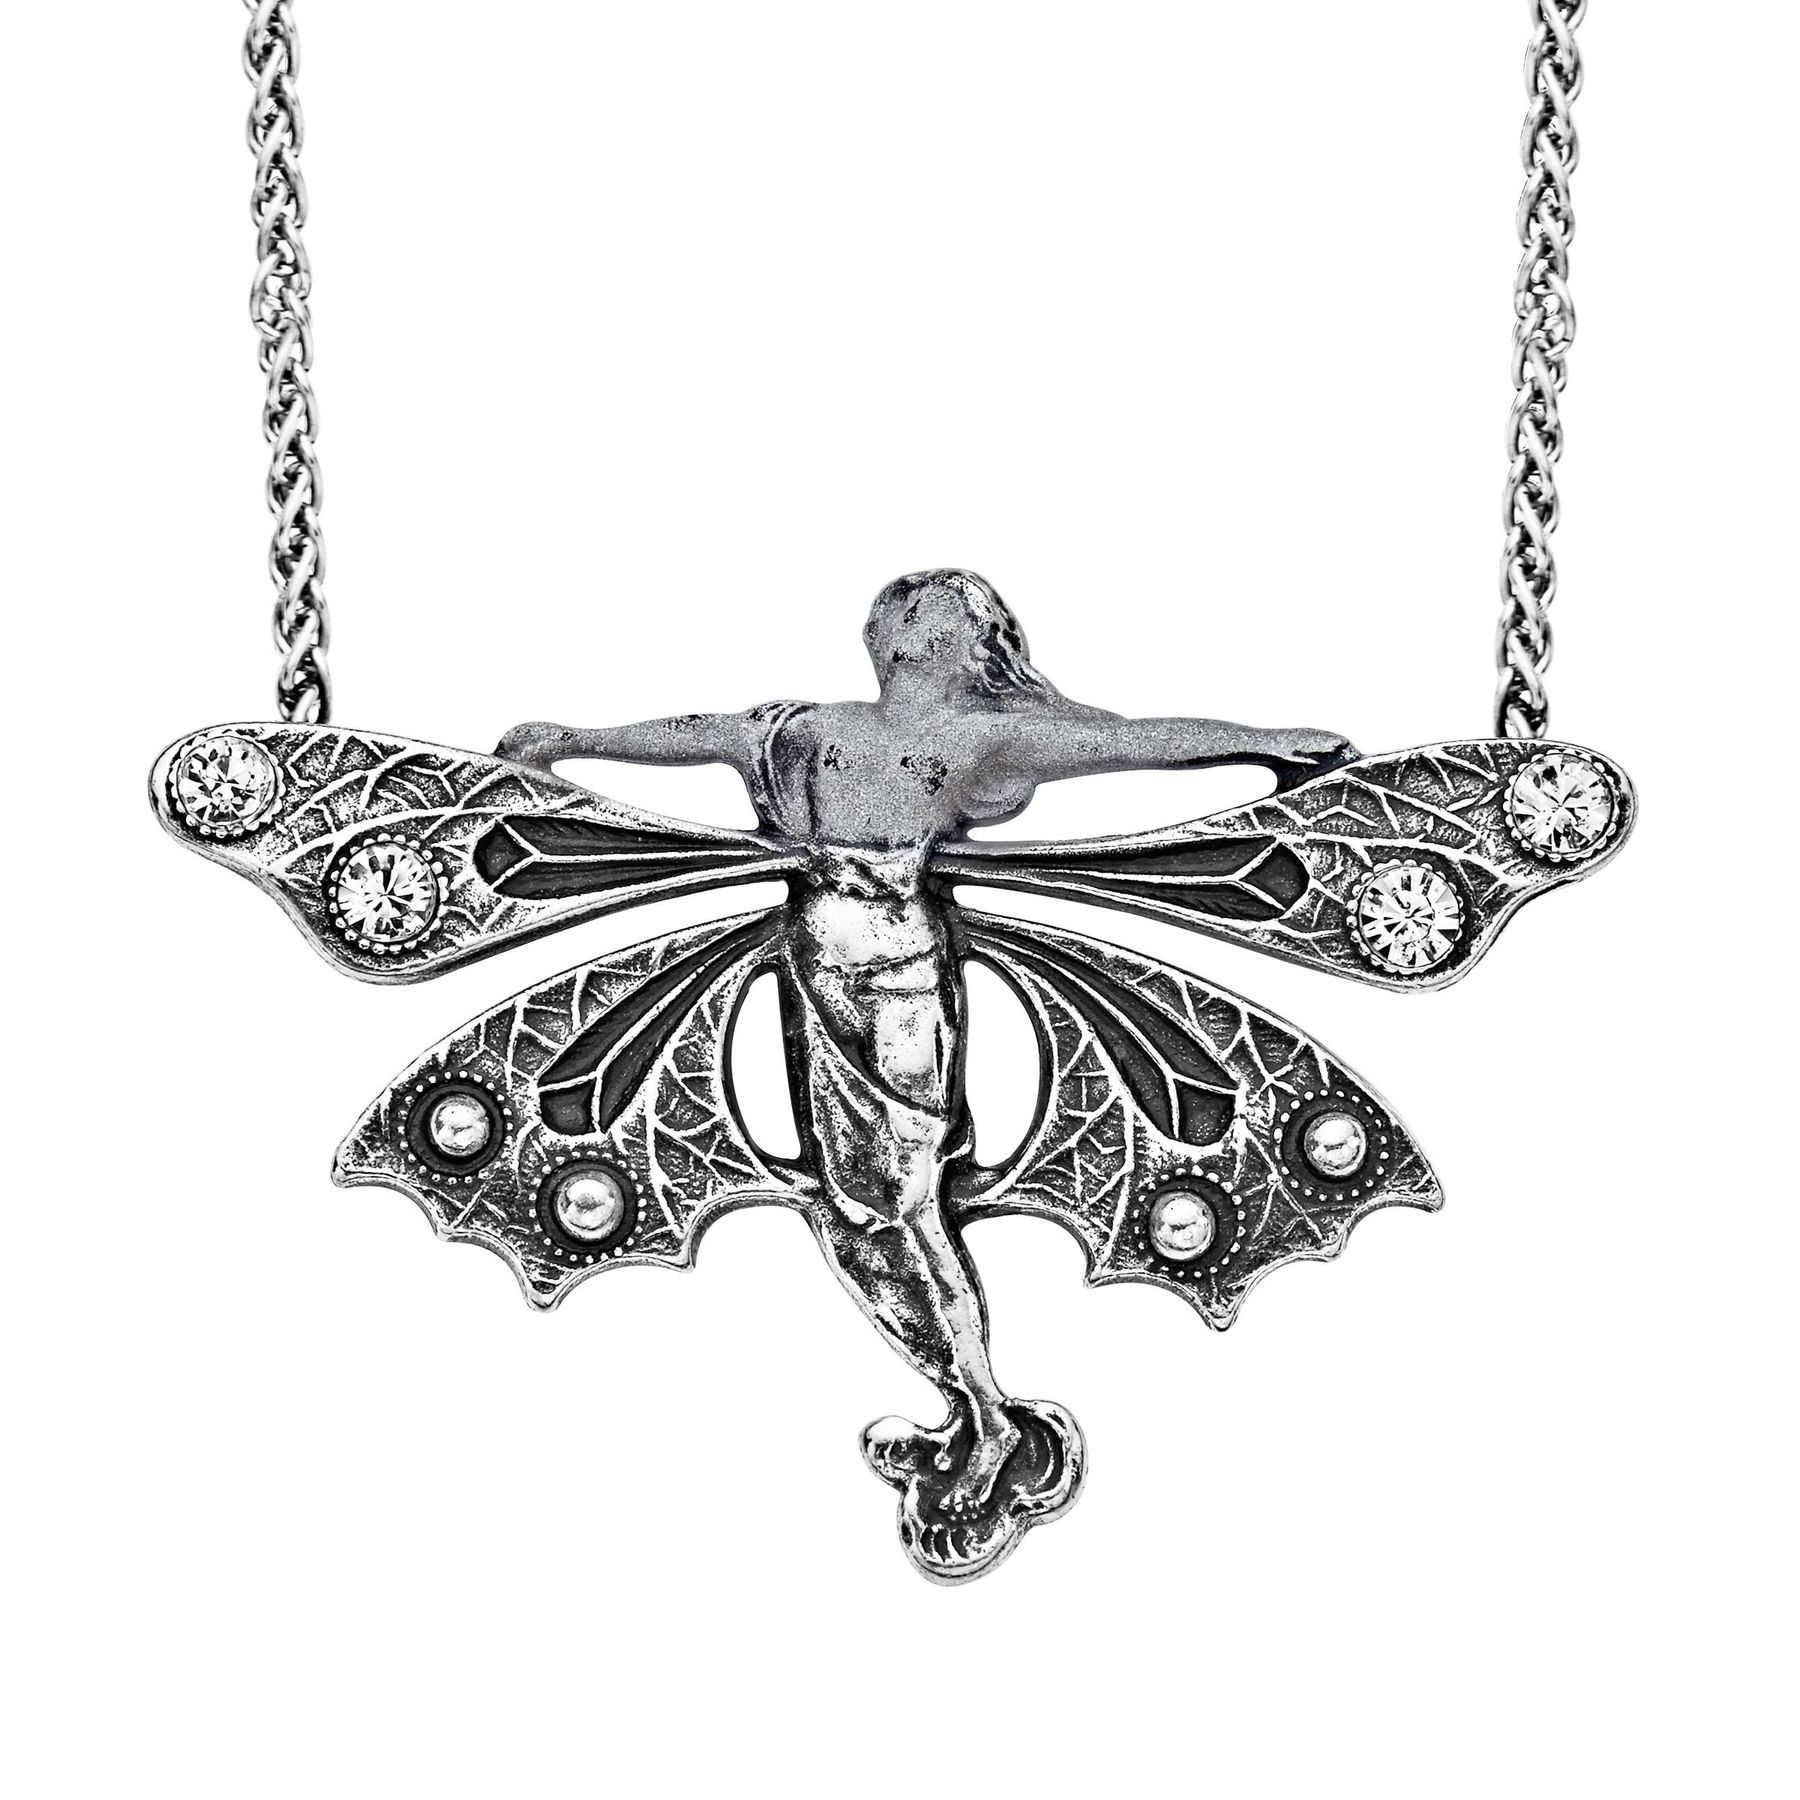 molly brown fairy online london necklace gold com sterling sliver main johnlewis at little rsp pdp buymolly wish